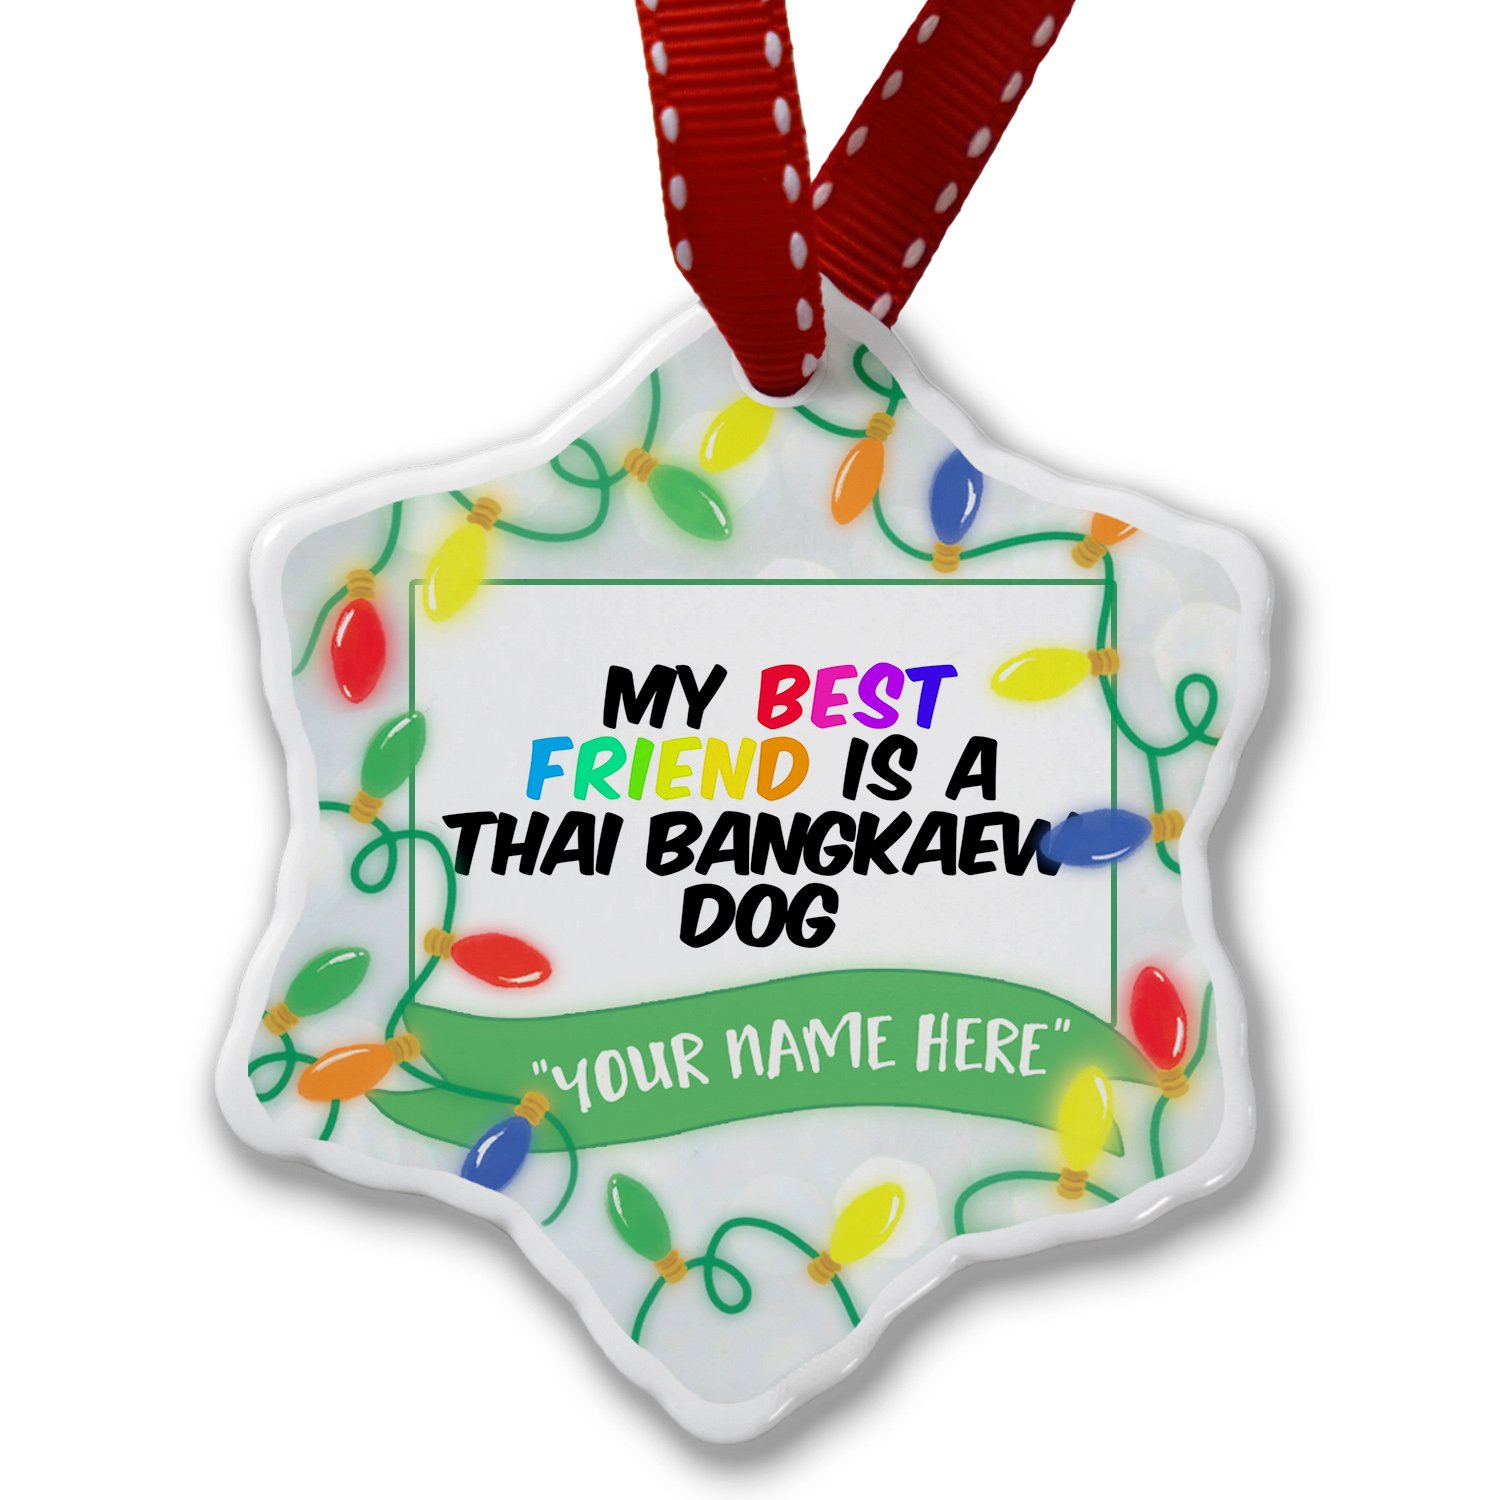 Personalized Name Christmas Ornament, My best Friend a Thai Bangkaew Dog from Thailand NEONBLOND